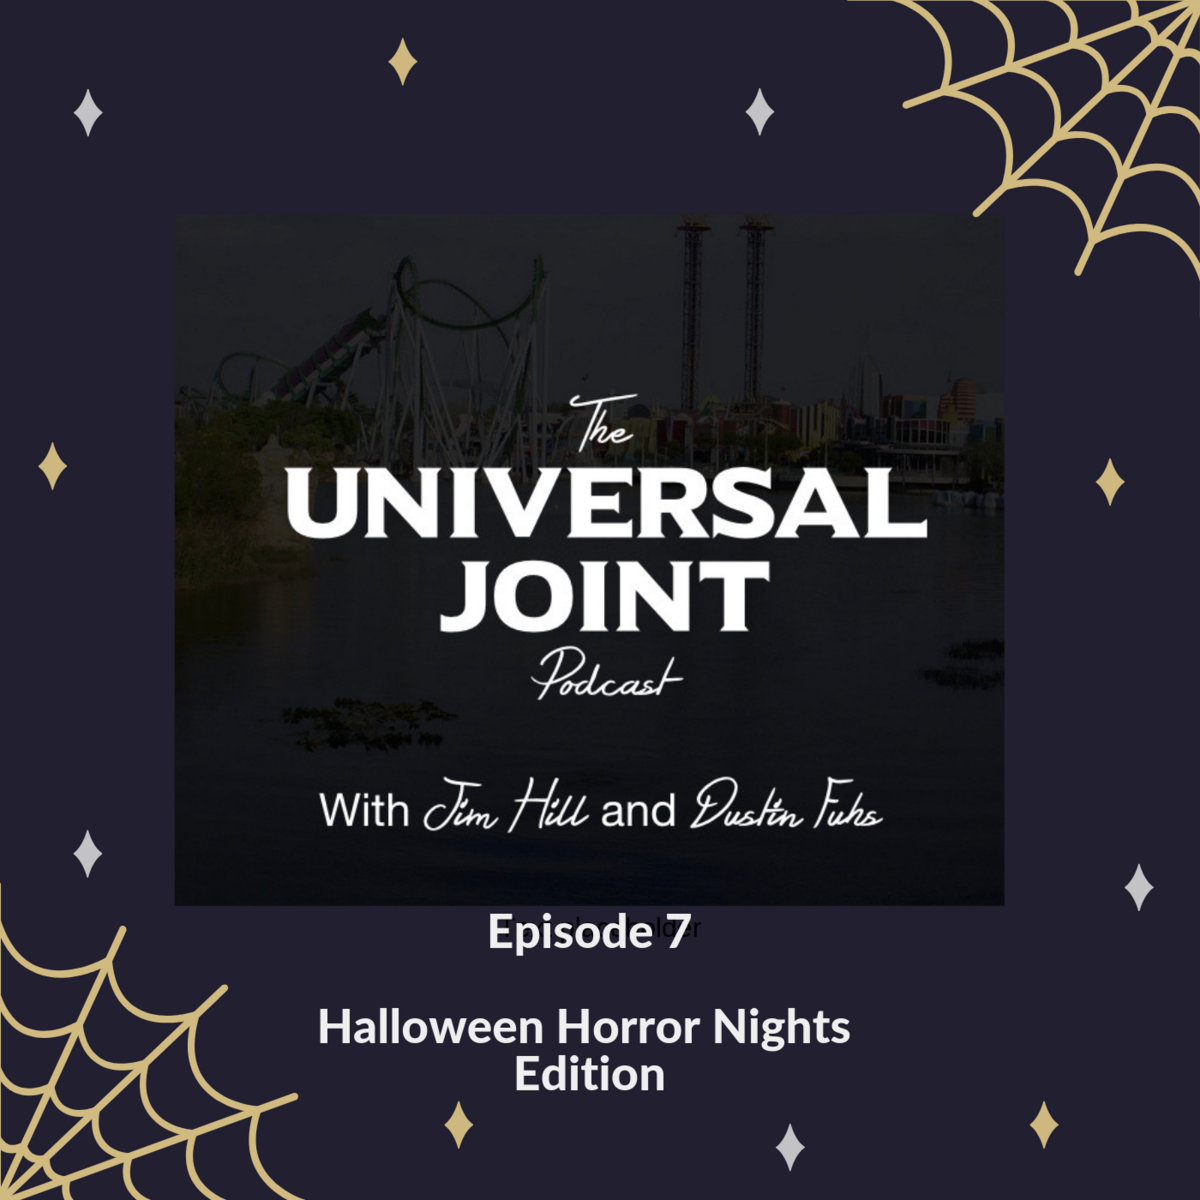 universal joint episode 7: is universal orlando shifting the date of